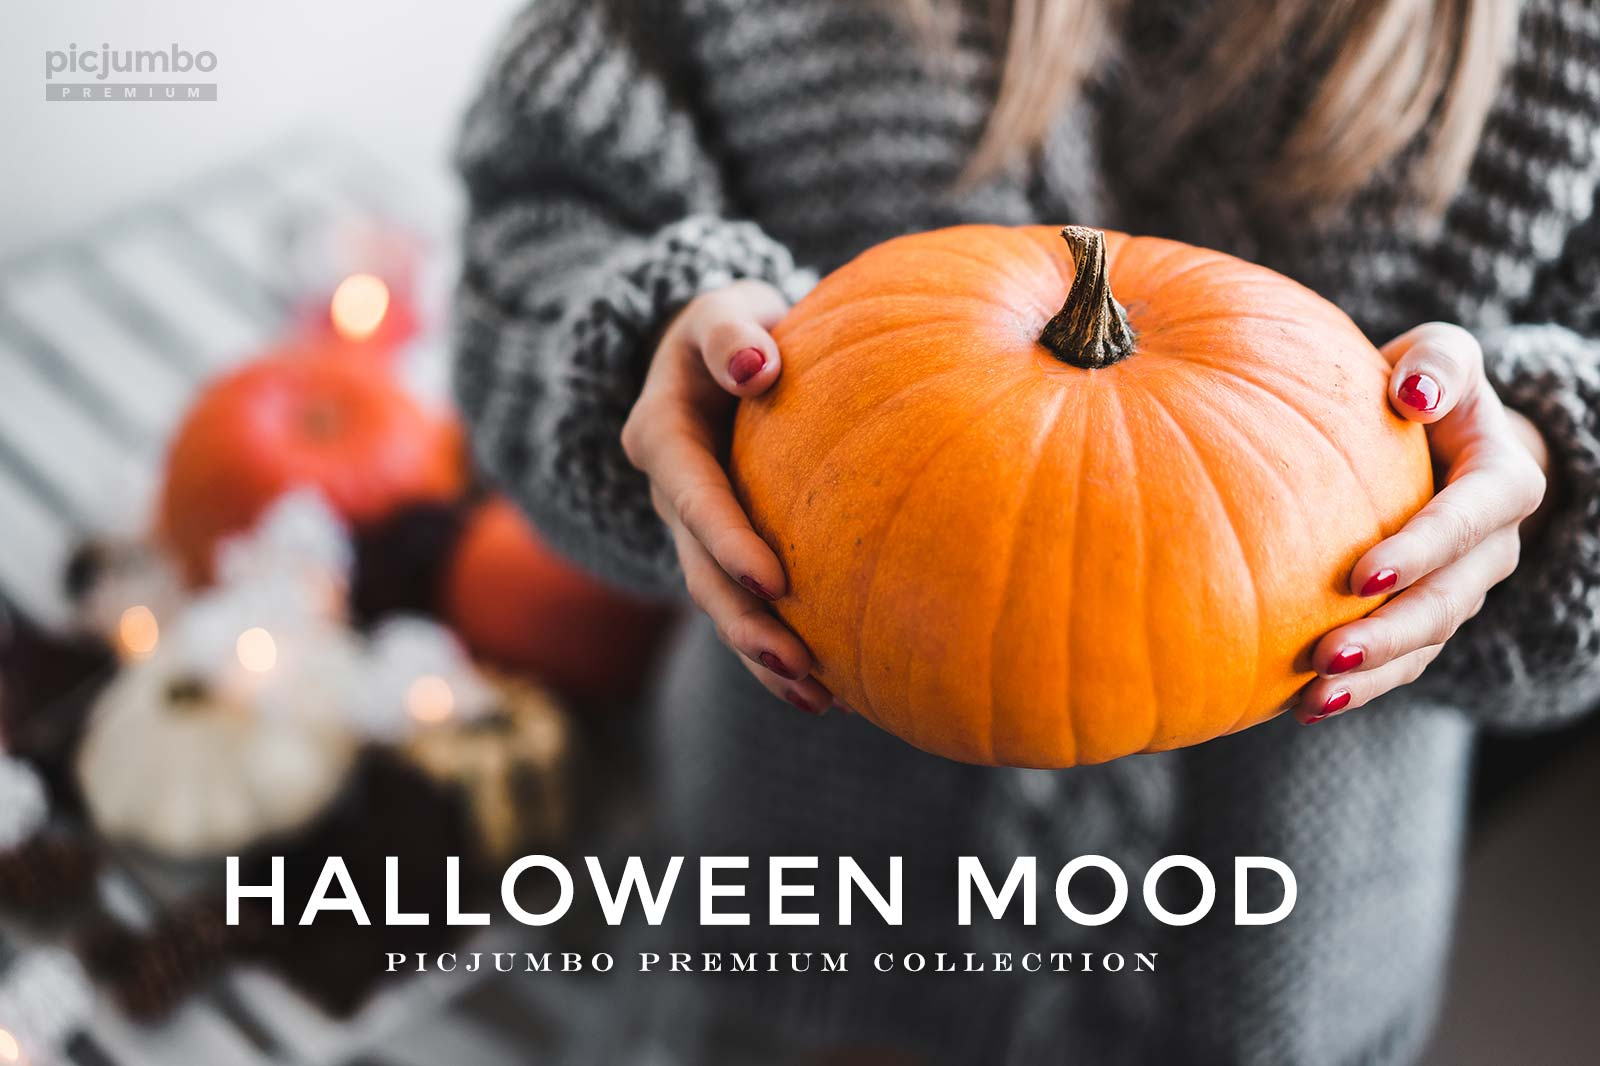 Halloween Mood — get it now in picjumbo PREMIUM!